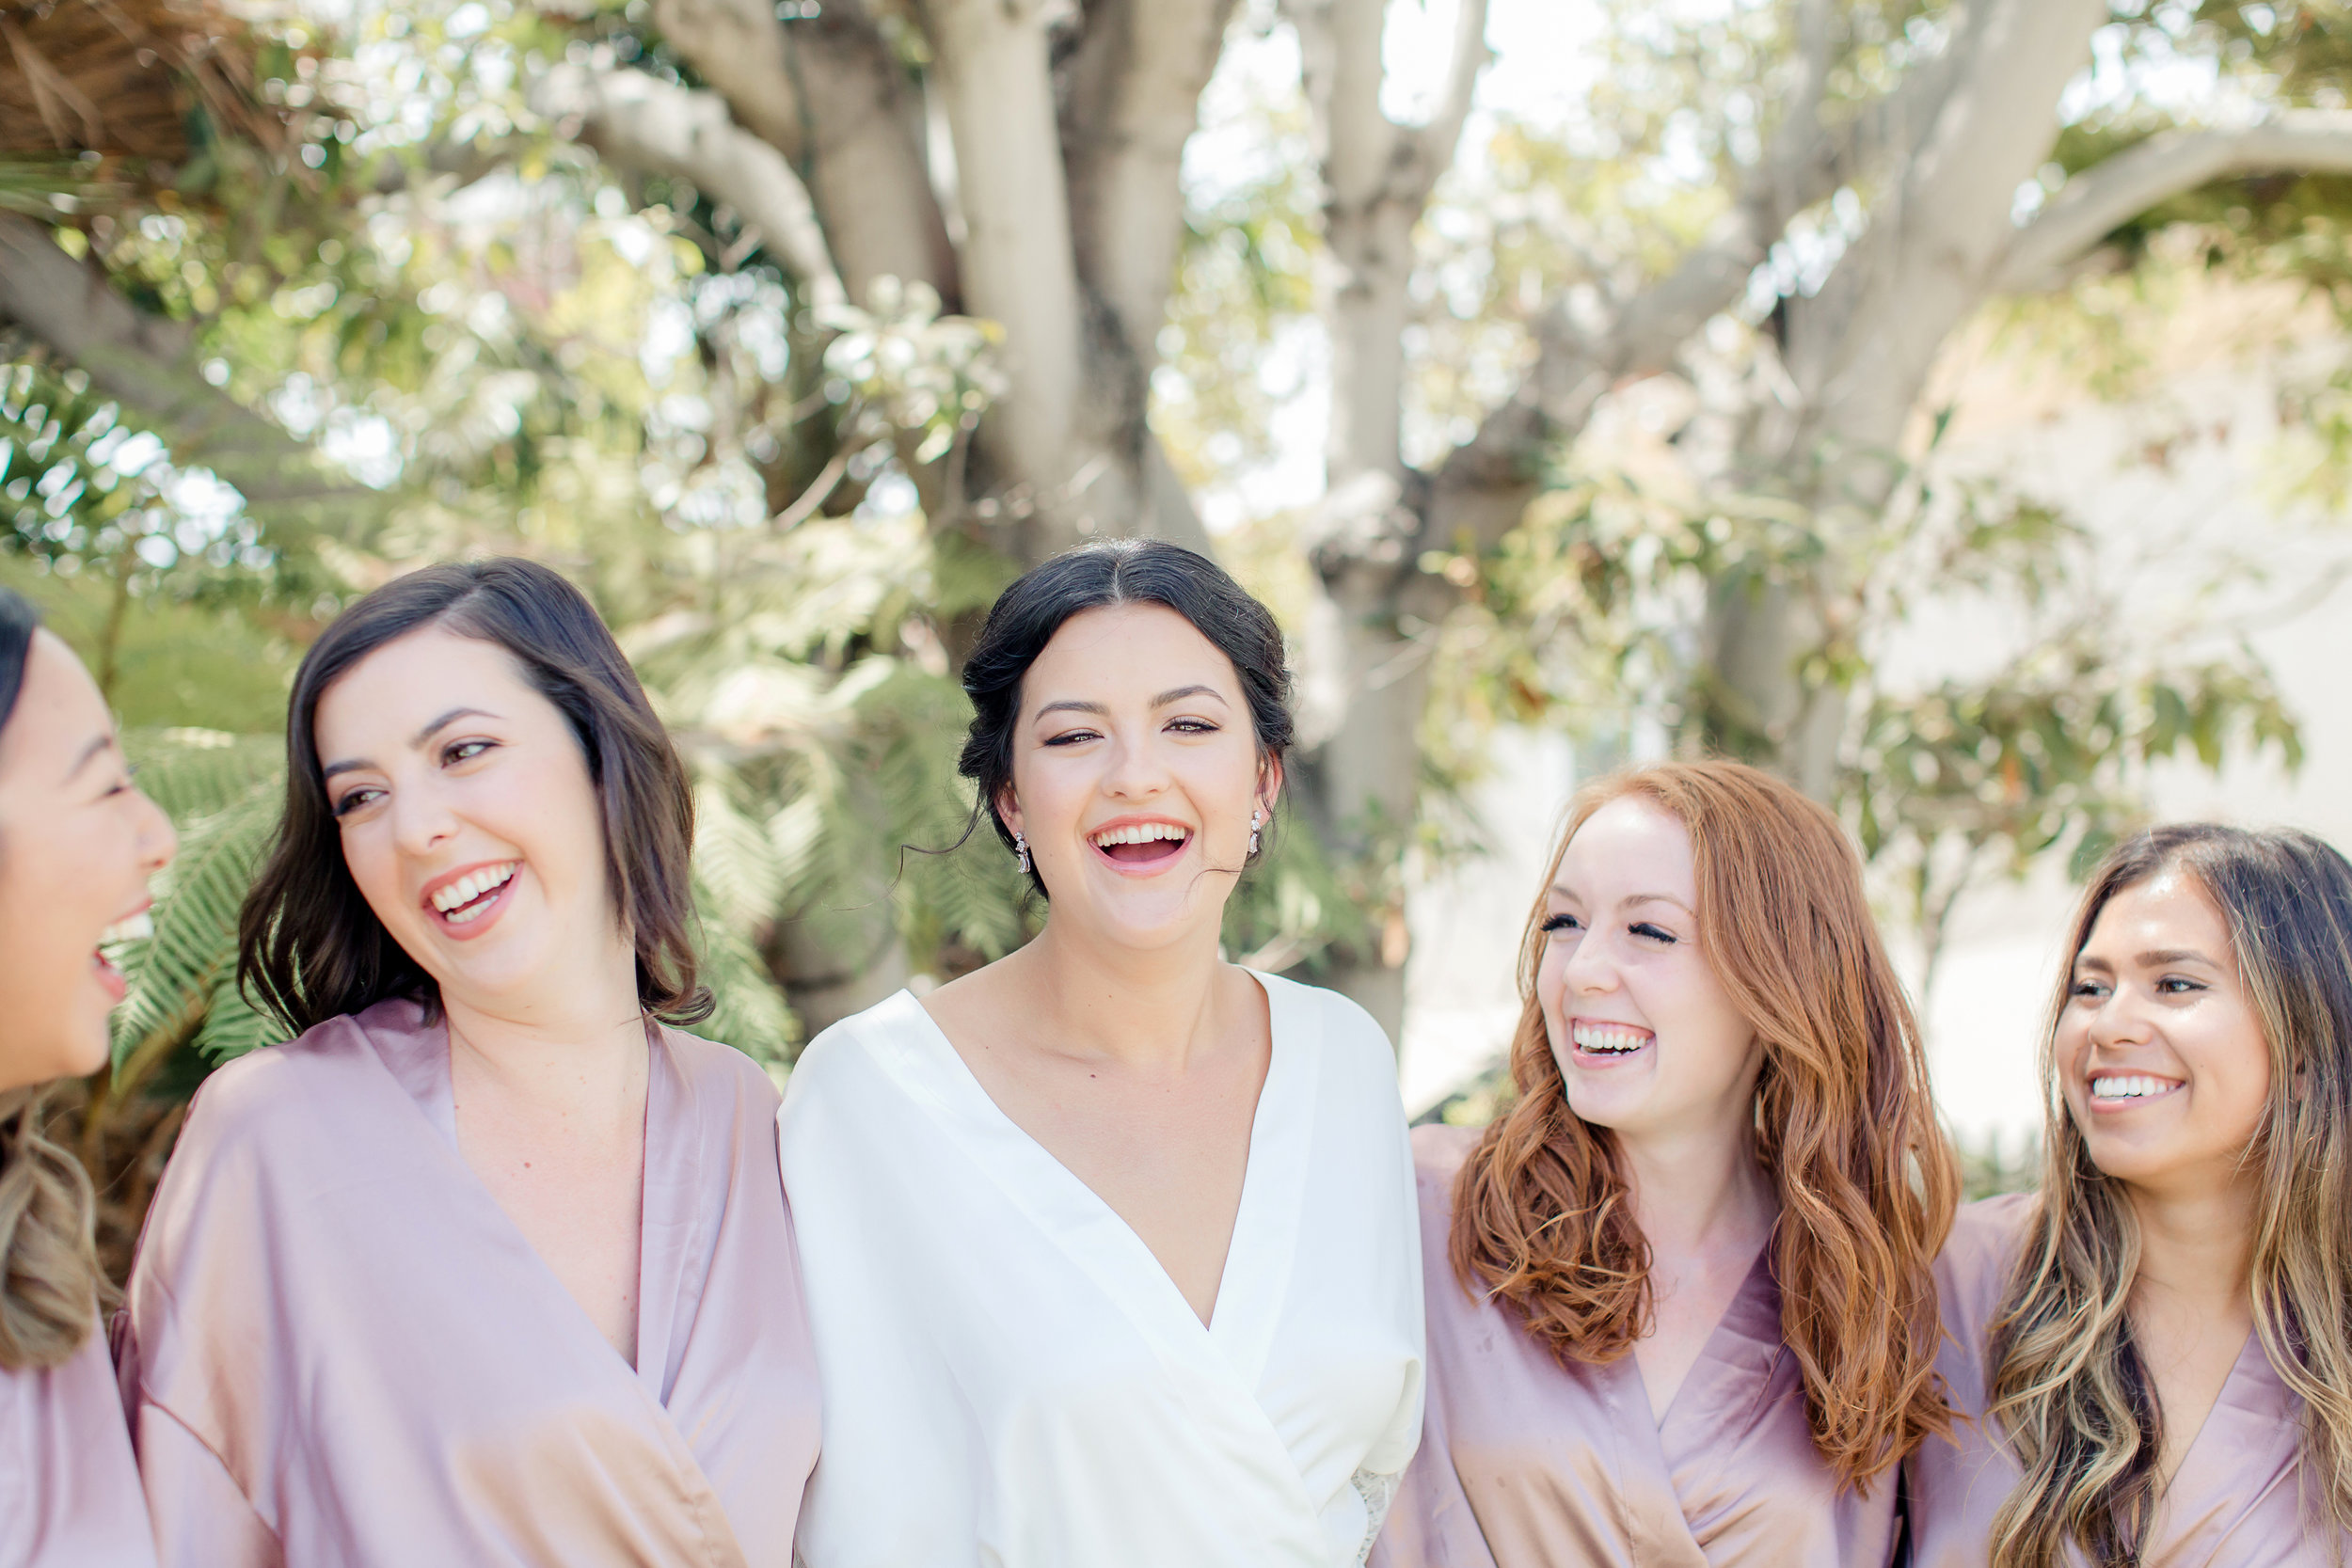 Happy bridal party, hair and makeup ready before the ceremony!